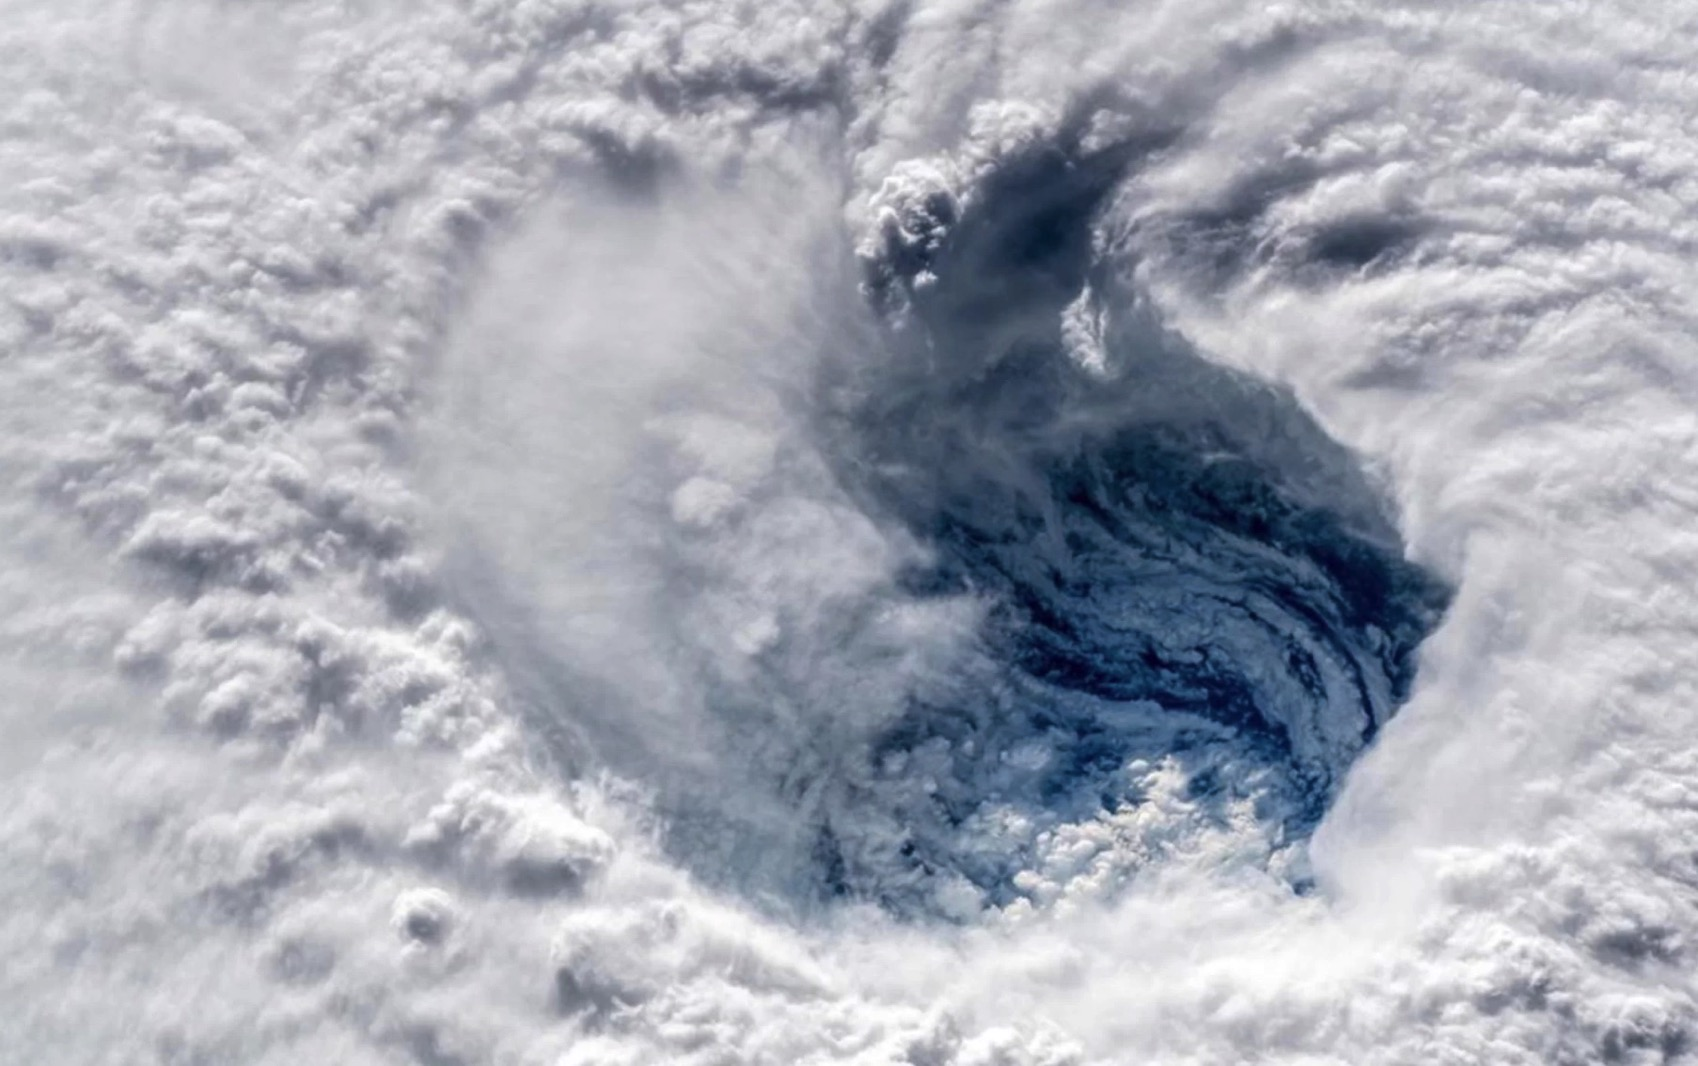 Hurricane Florence Is a No Kidding Nightmare in These New Astronaut Photos